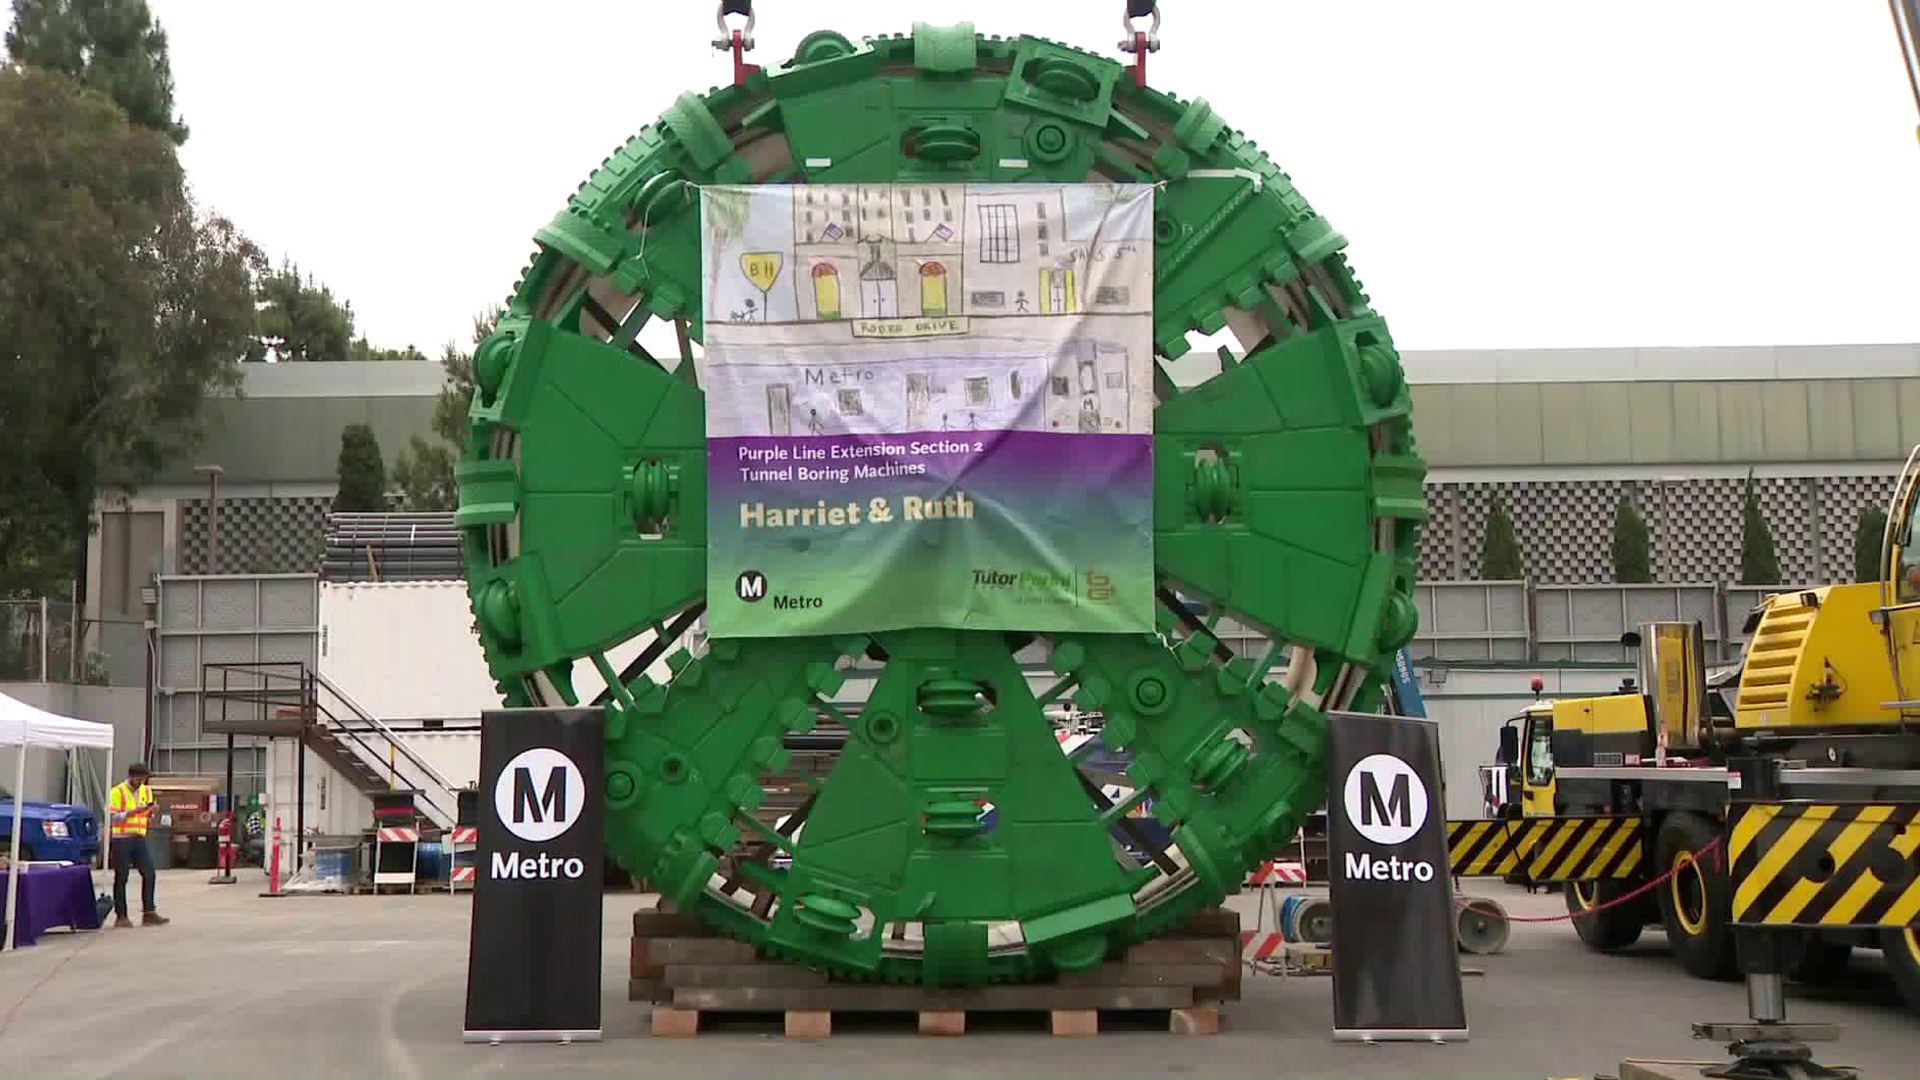 Metro officials unveiled two new Tunnel Boring Machines for the Purple Line extension project on June 17, 2019.(Credit: KTLA)